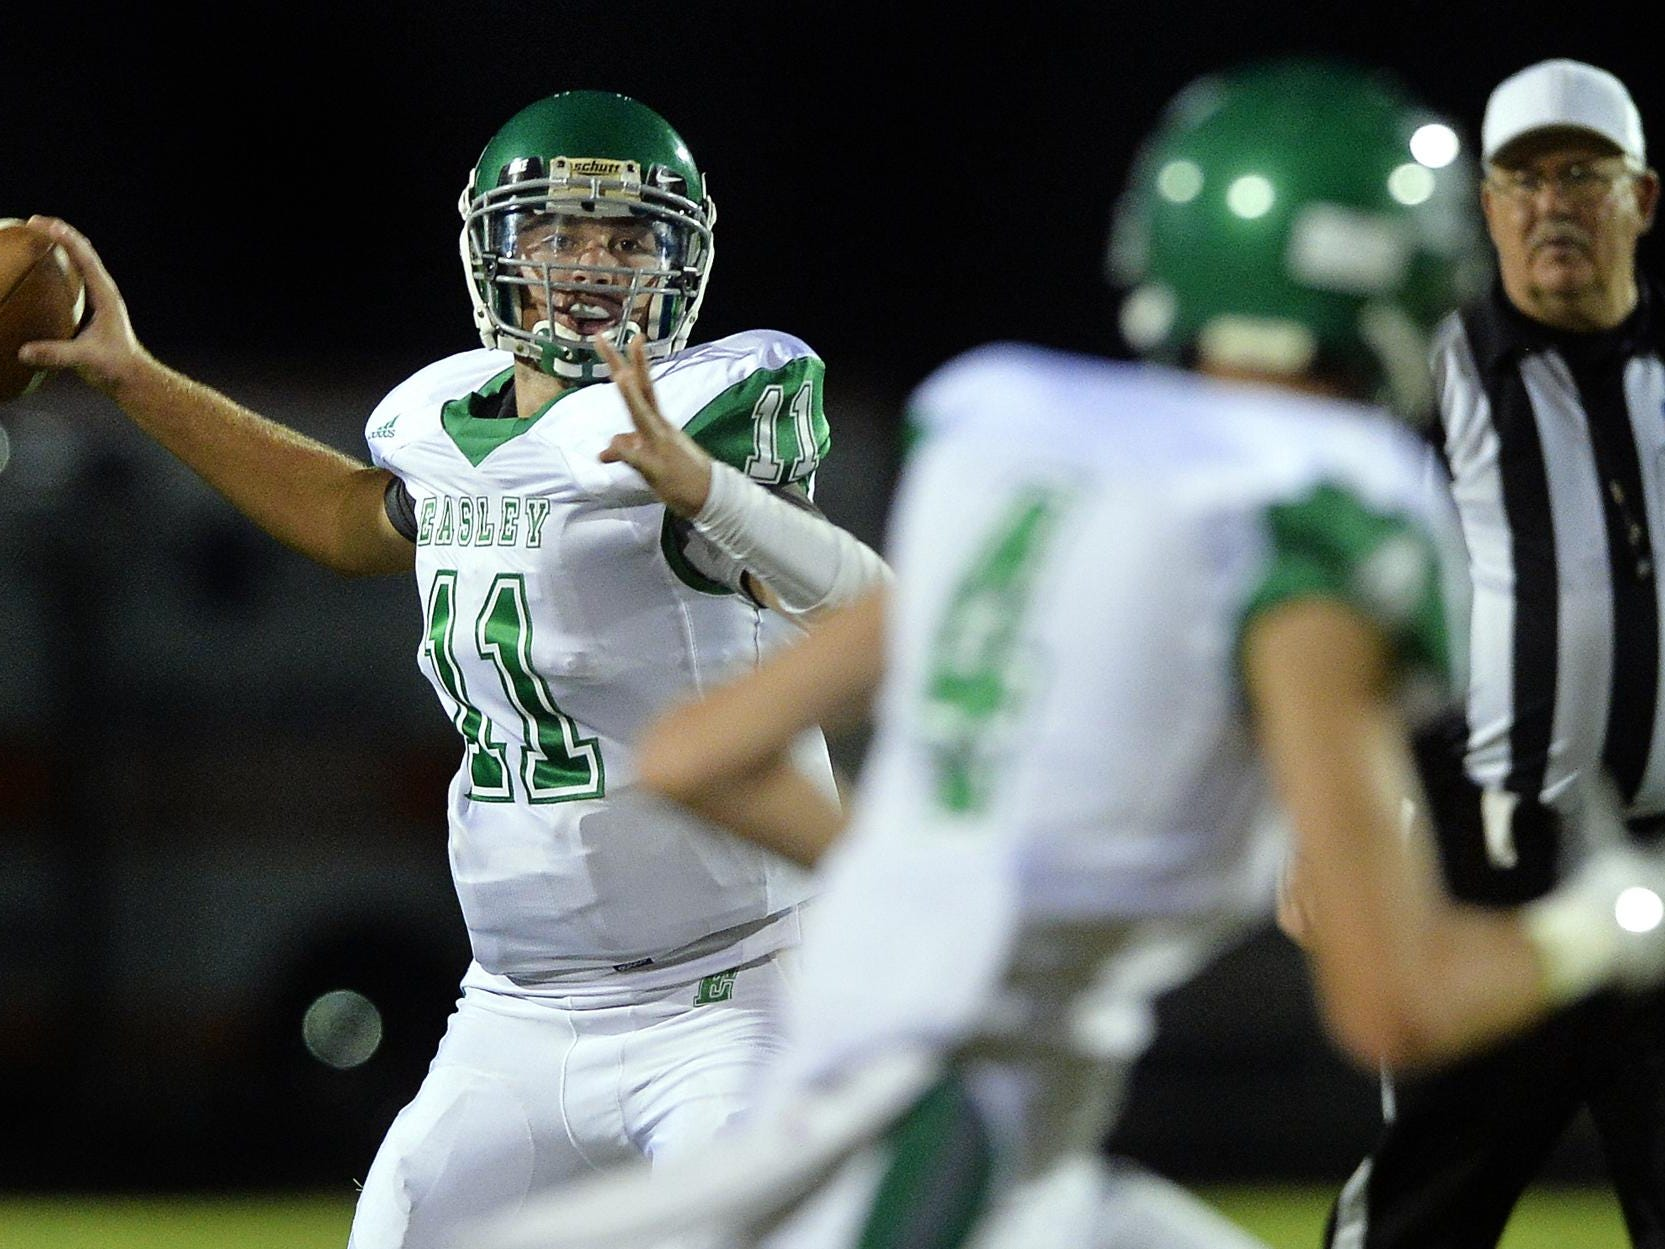 Easley's Dalton Black (11) had a 57-yard touchdown pass to Holden Martin (4) against Daniel on Friday.